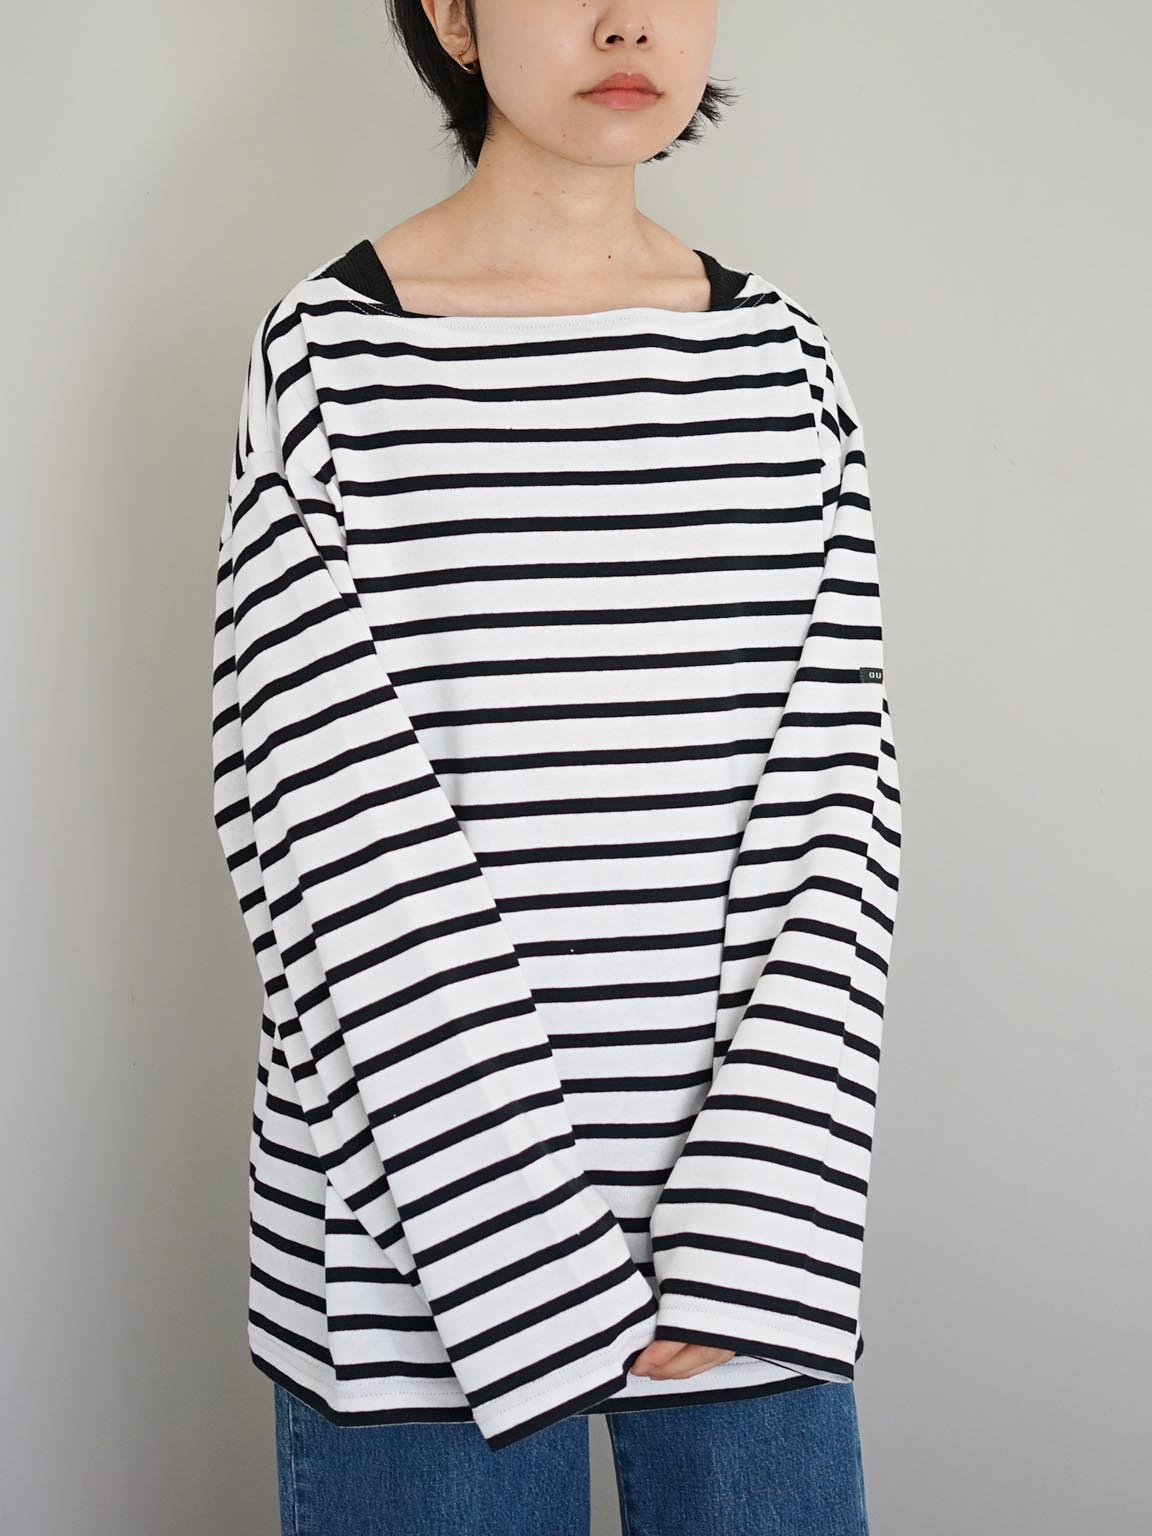 """OUTIL / TRICOT AAST """"WHITE-BLACK"""""""